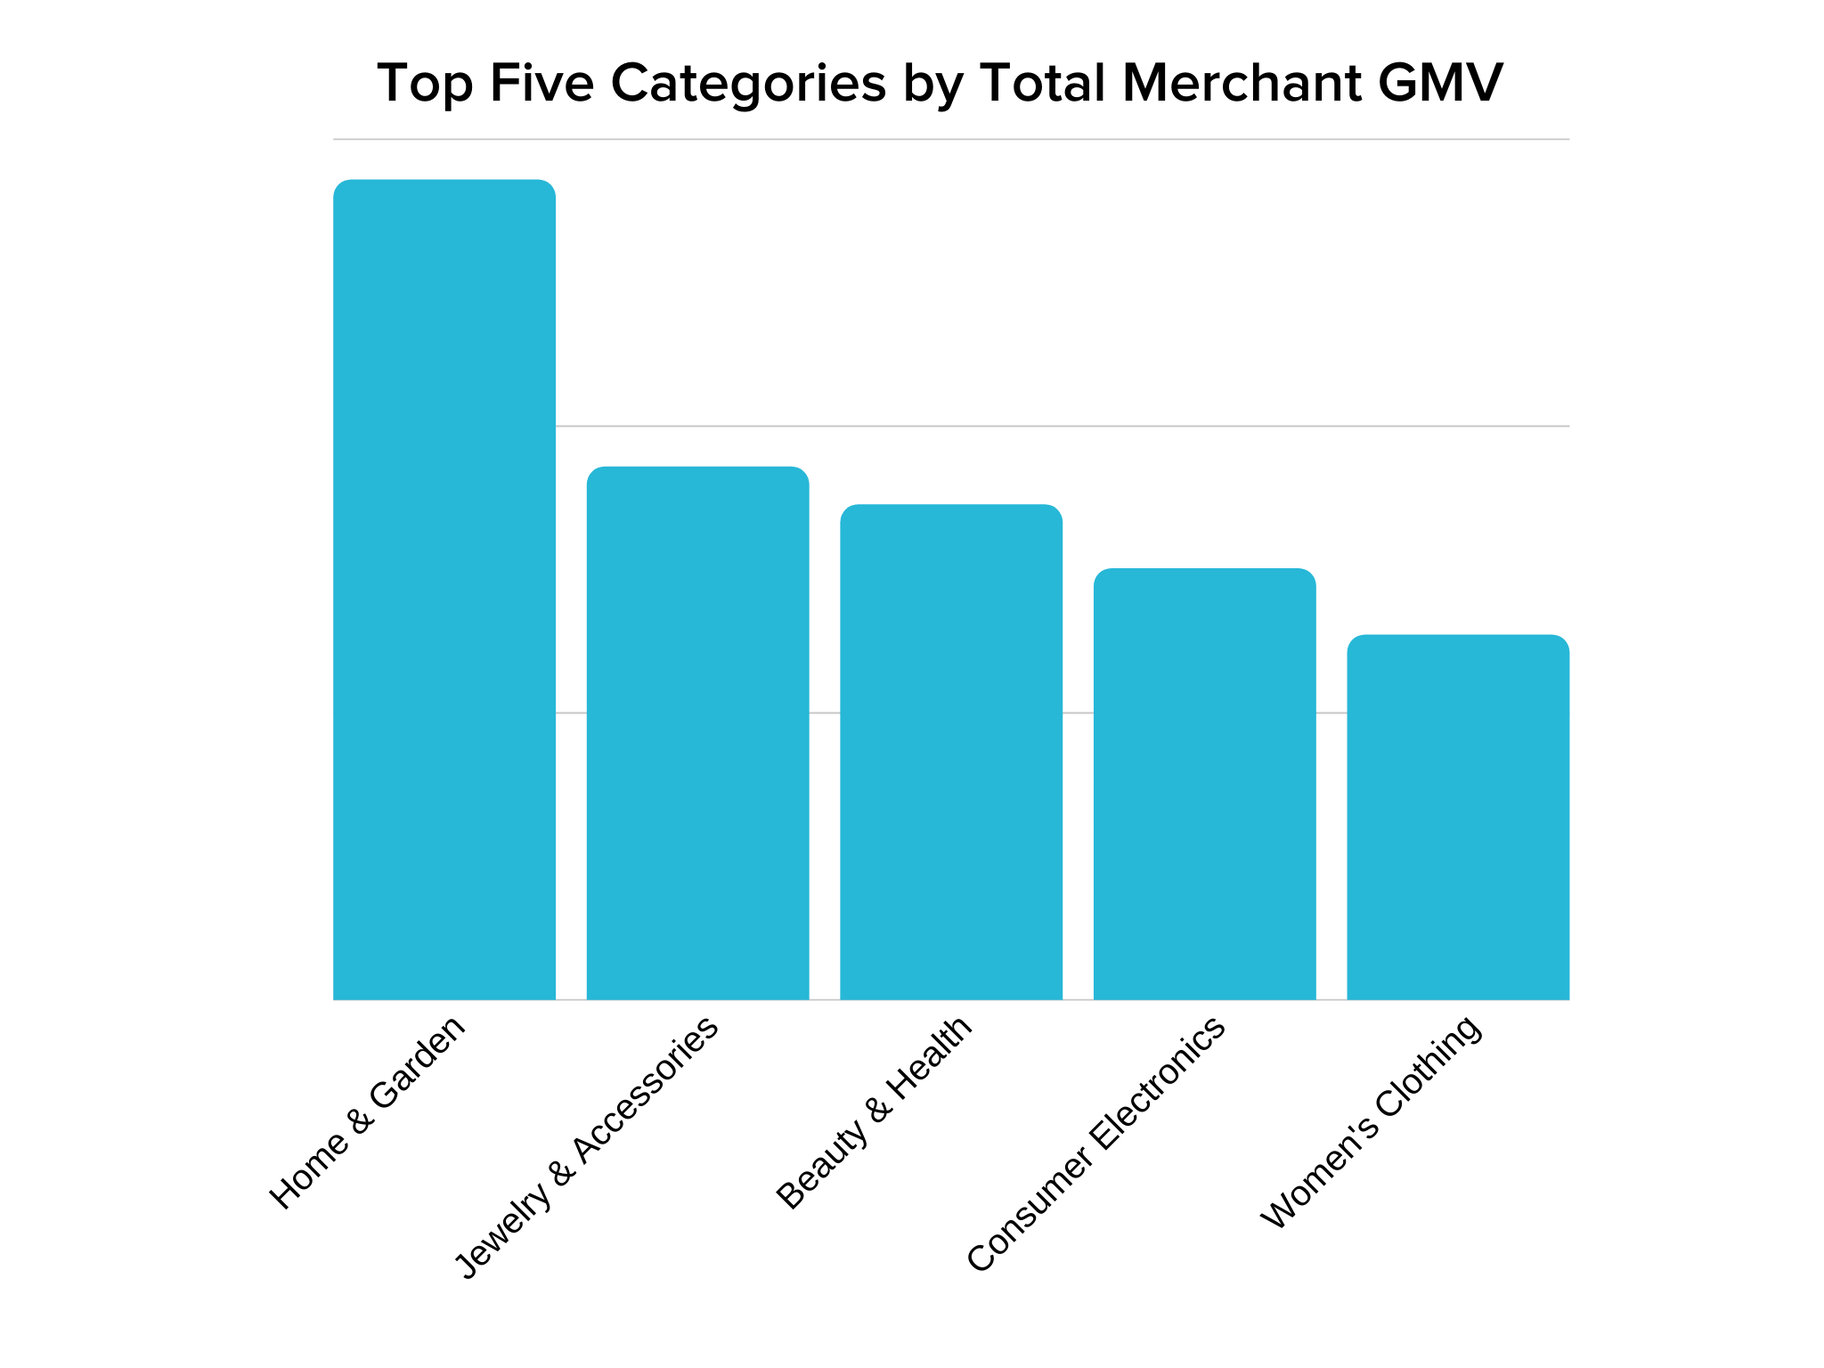 graph showing home & garden as the top category by merchant gmv